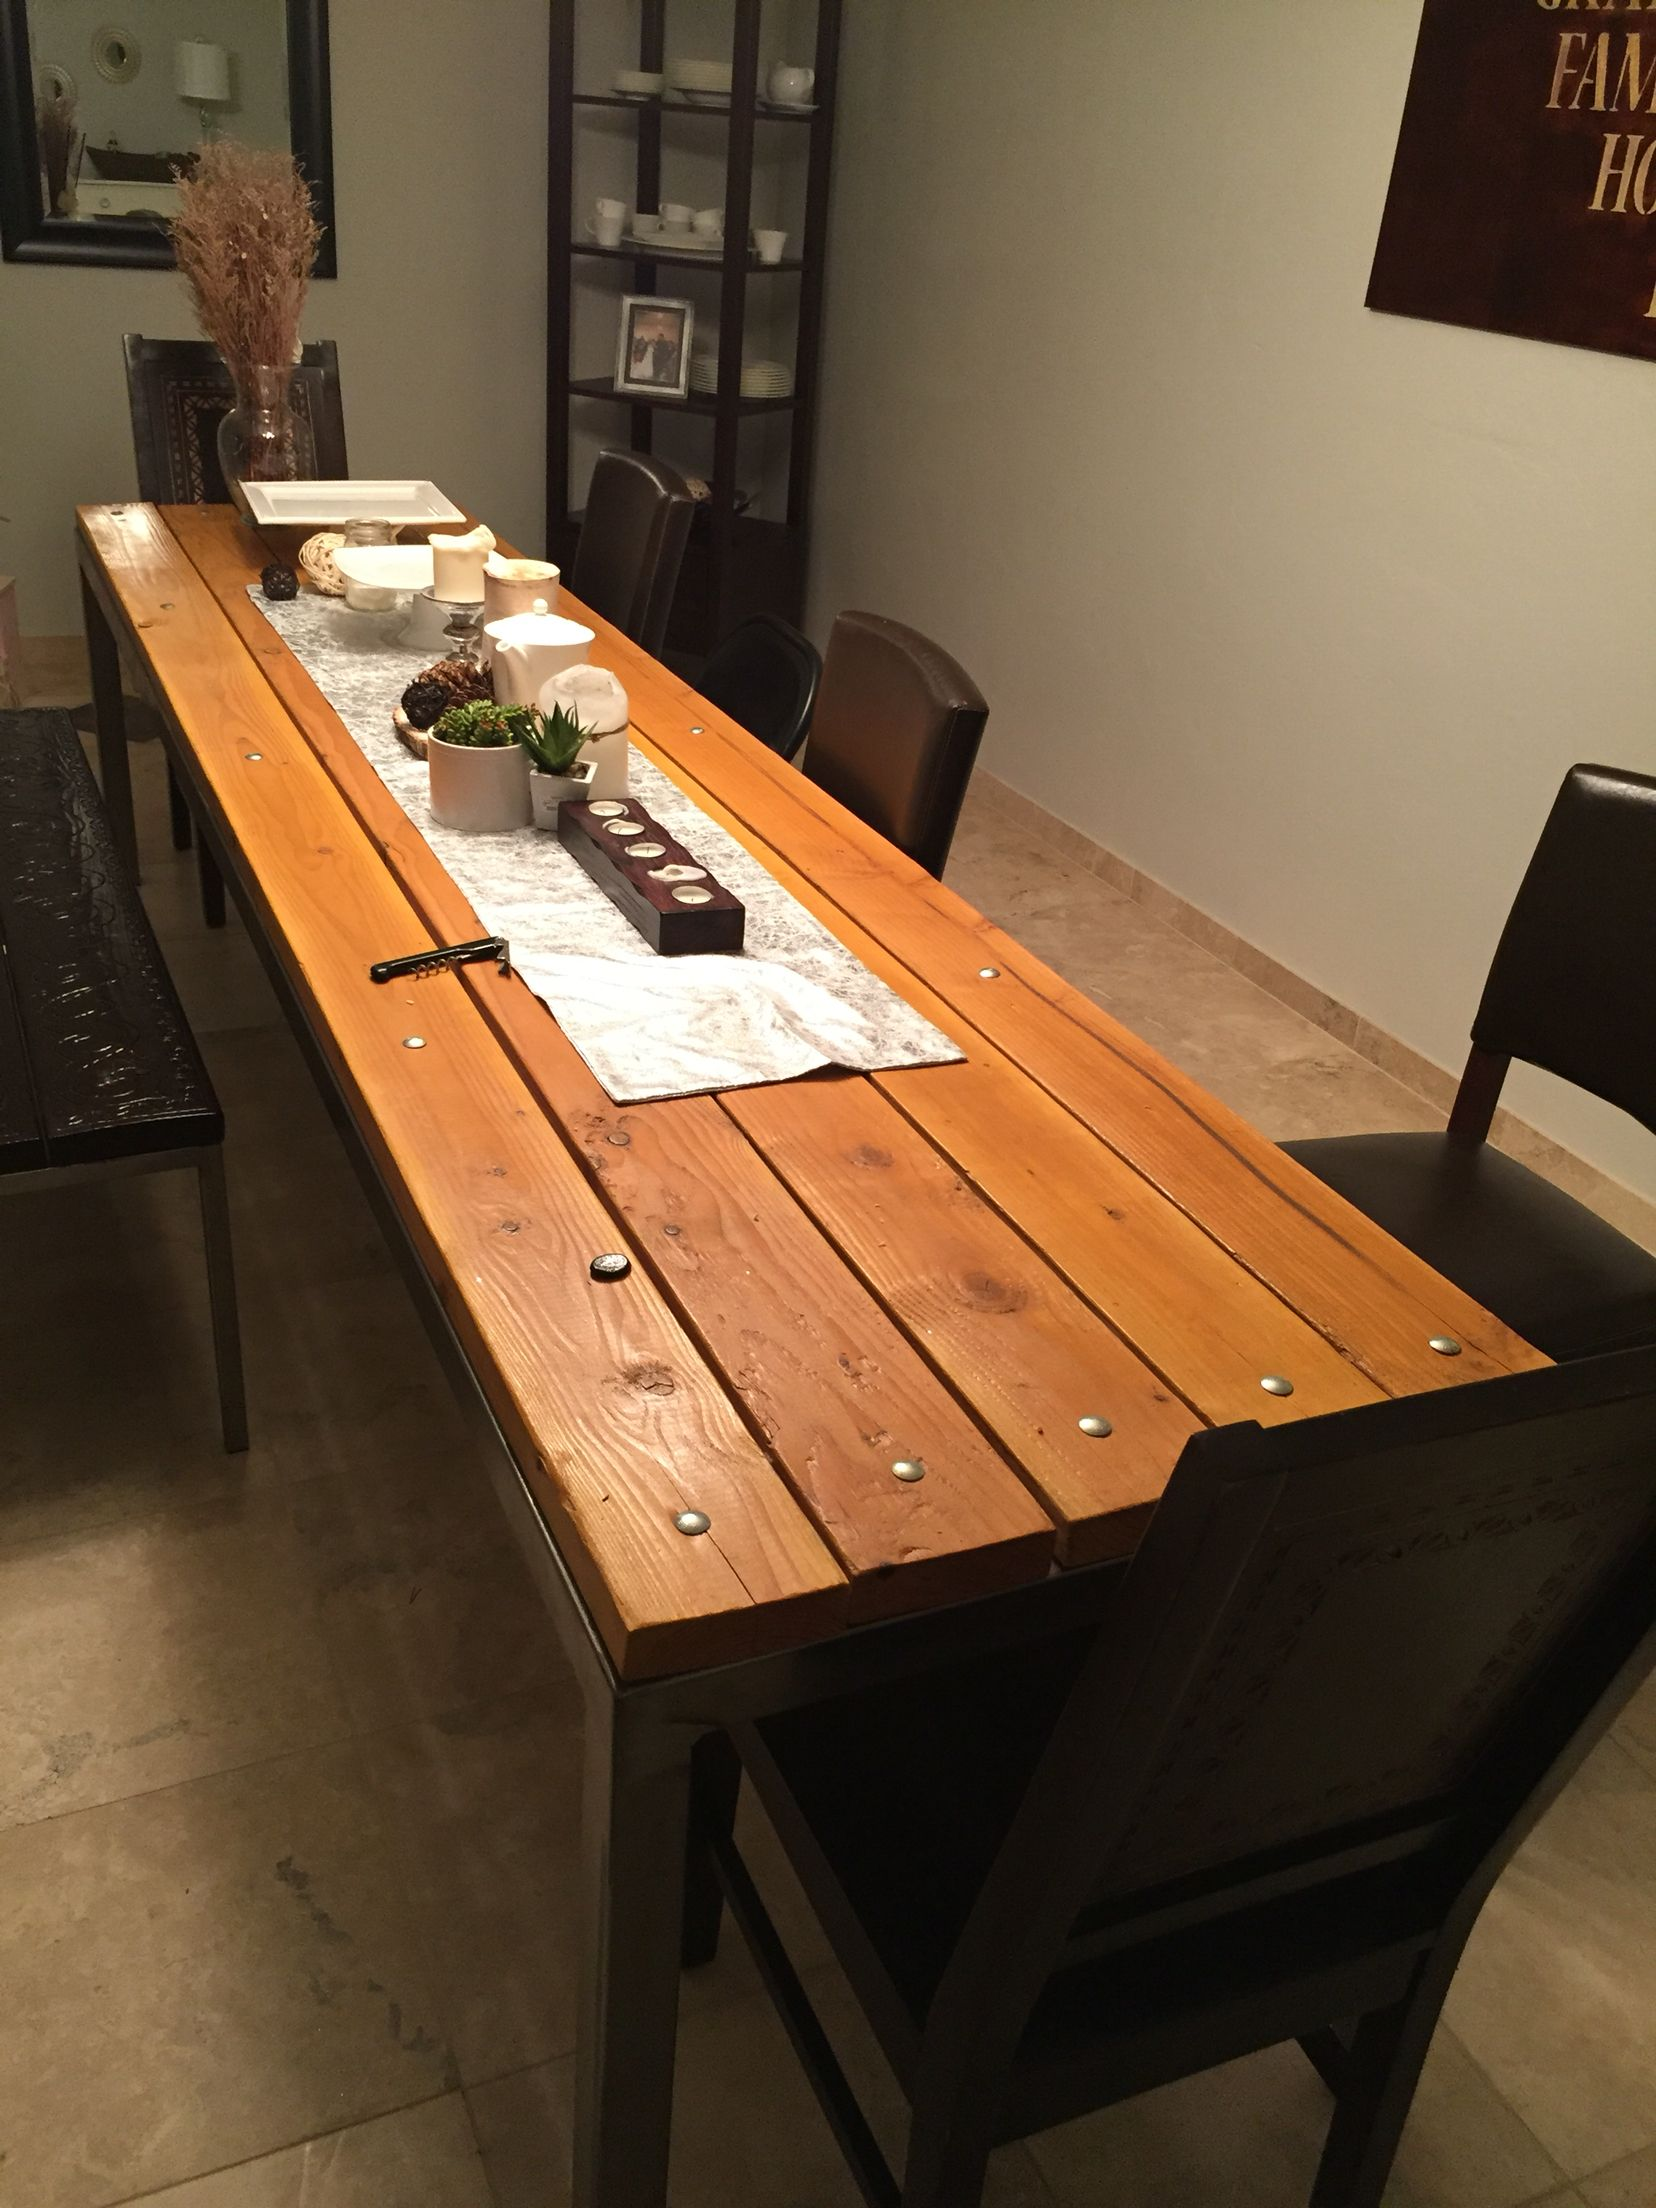 Farmhouse dining table wood top, metal legs, carriage